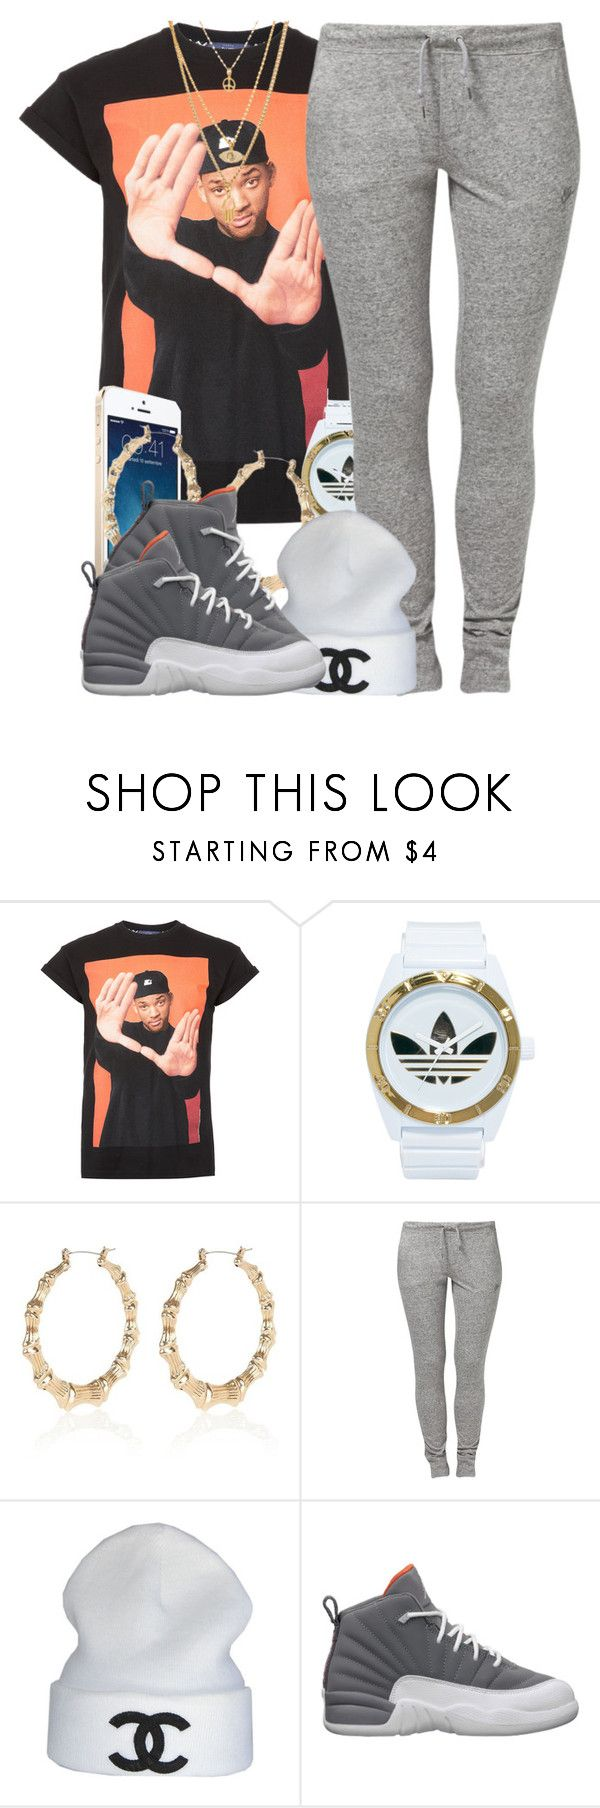 """""""Fresh Prince"""" by oh-aurora ❤ liked on Polyvore featuring Topman, adidas, Lauren Conrad, River Island, NIKE, CC and Retrò"""